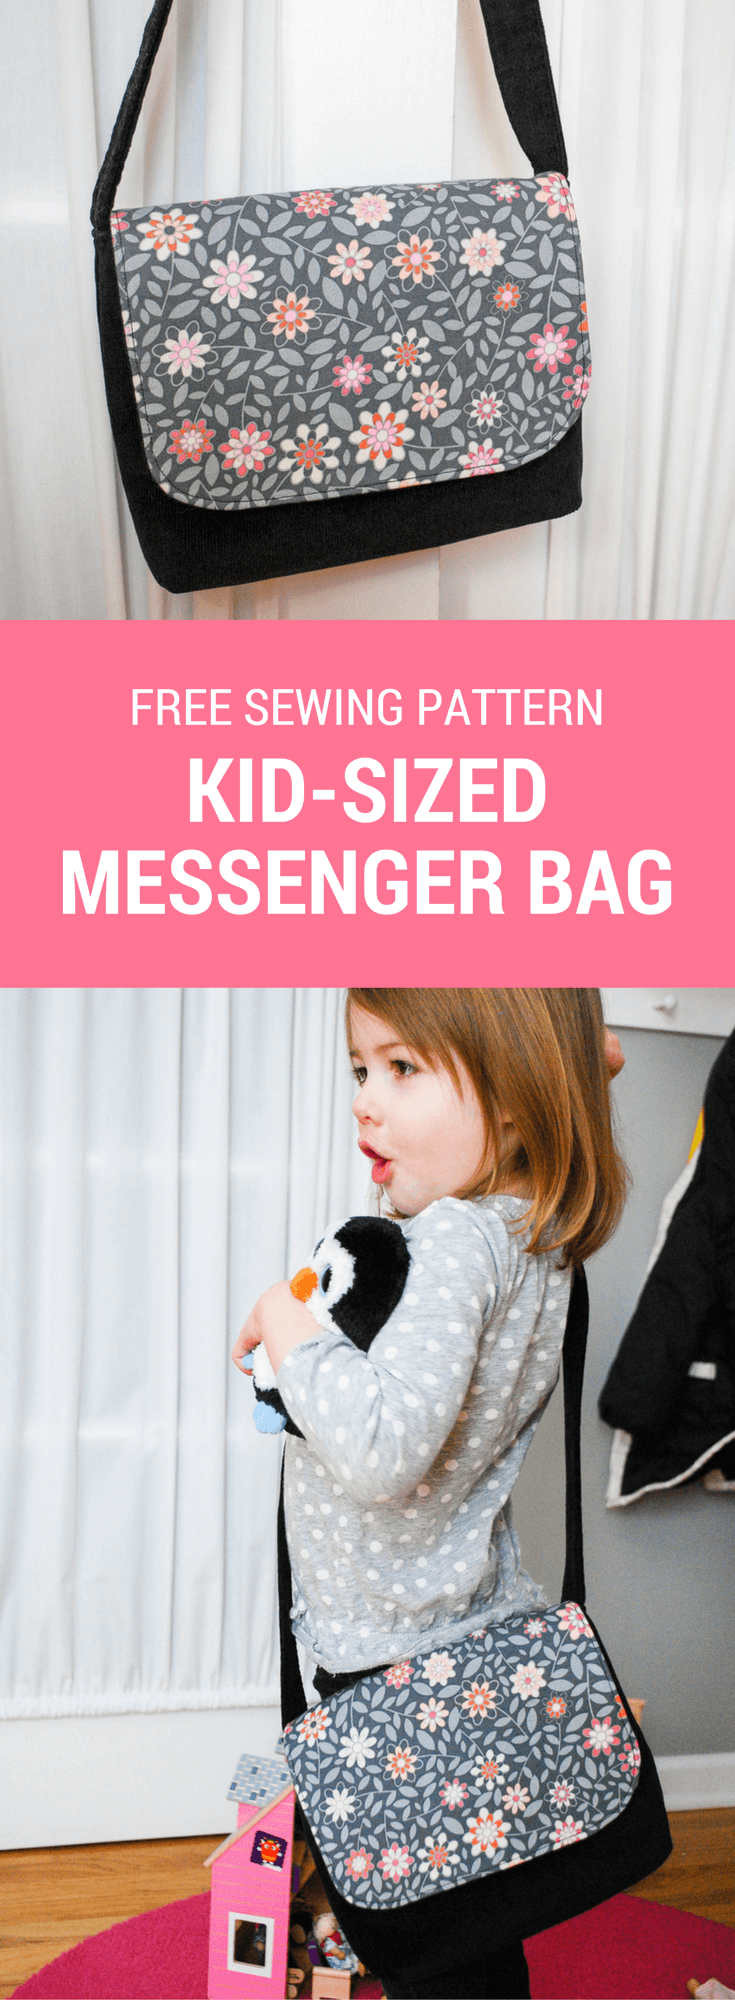 Messenger Bag Free Pattern and Sewing Tutorial Free sewing pattern for a kid-sized messenger bag. It's an easy DIY sewing project for beginners and makes a great DIY gift for kids!Easy Come Easy Go  Easy Come, Easy Go may refer to: